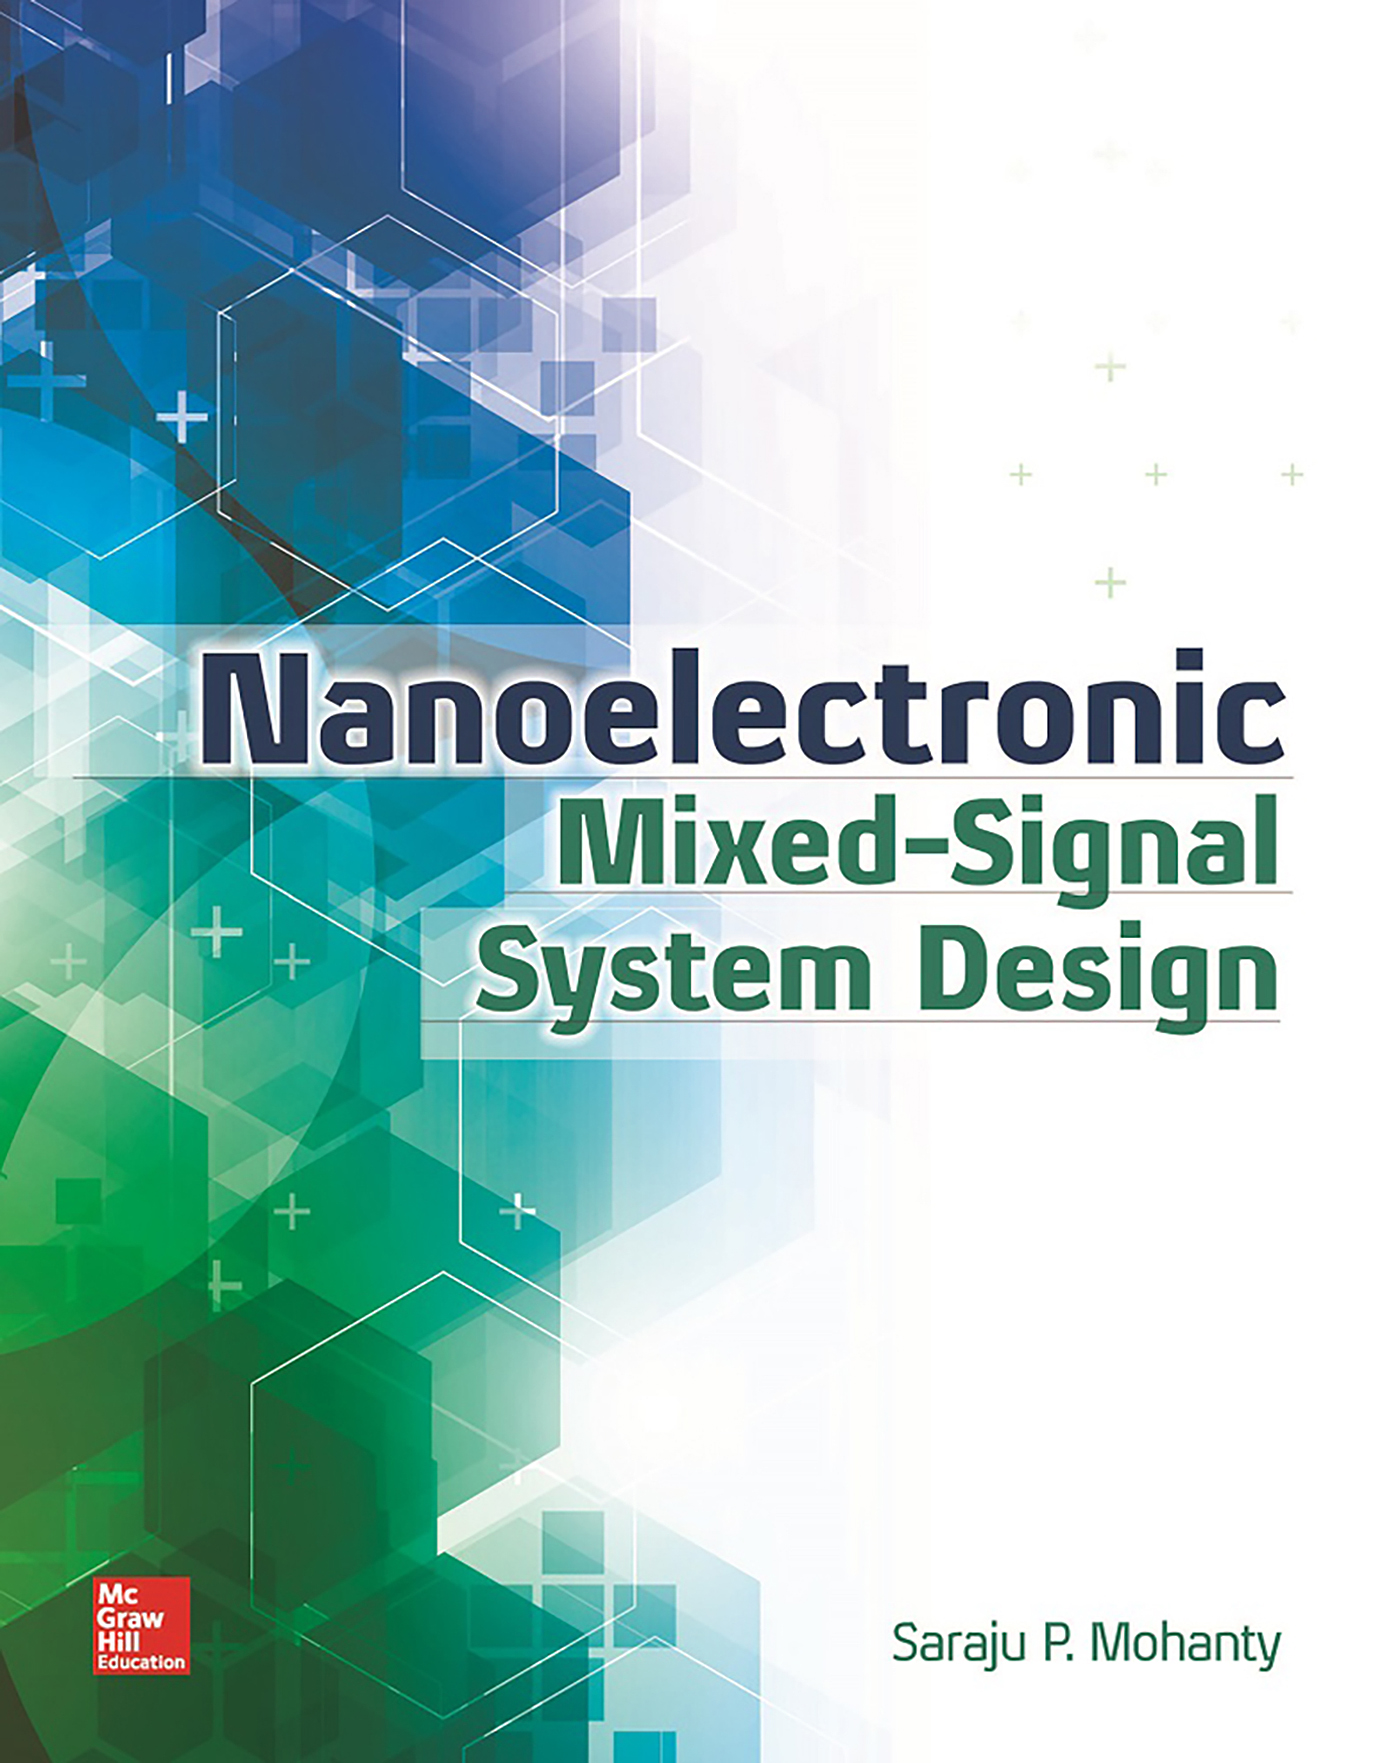 Nanoelectronic Mixed-Signal System Design, McGraw-Hill, 2015